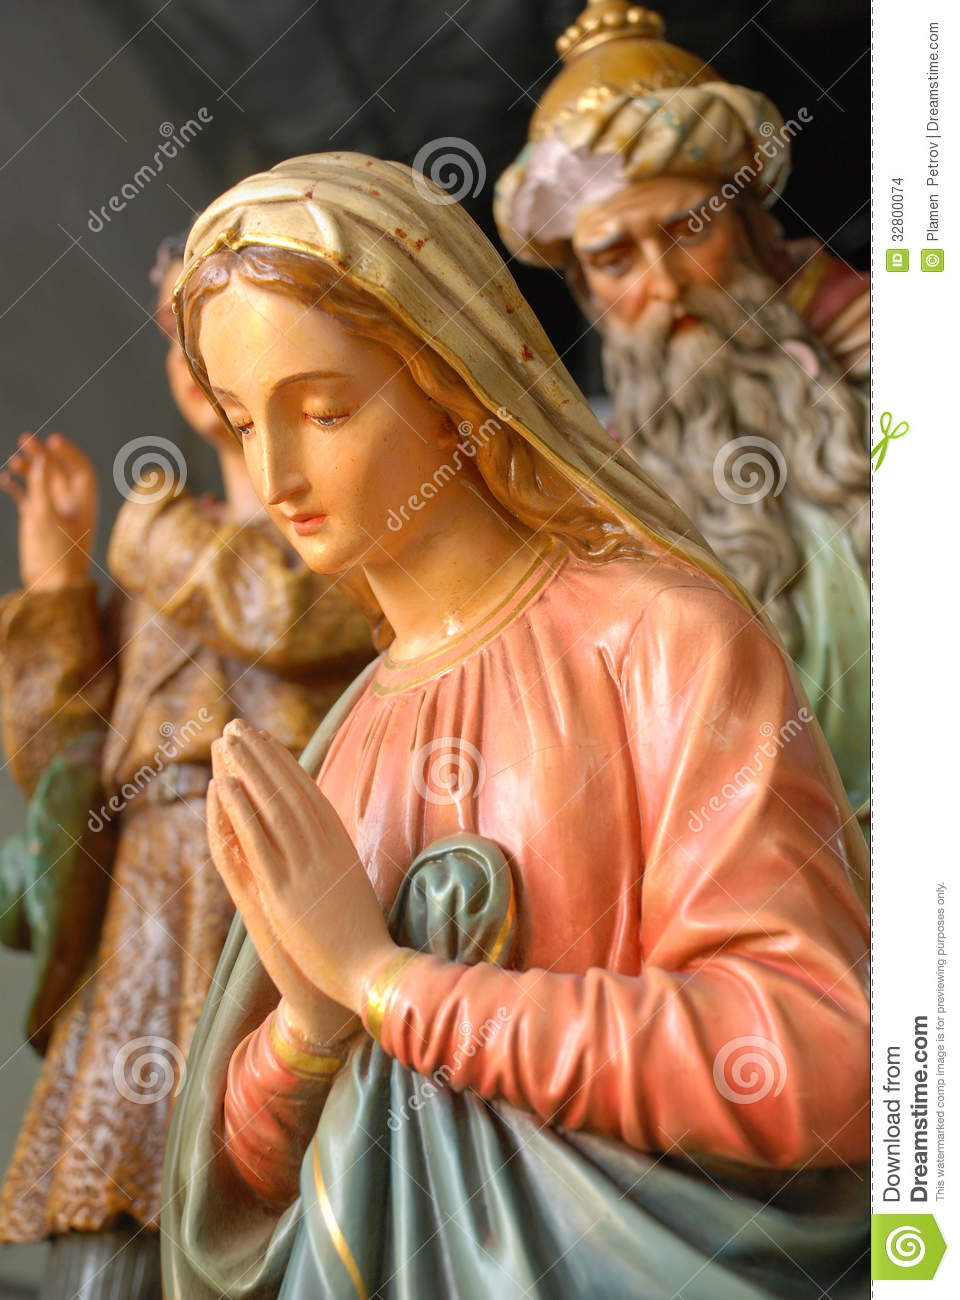 Antique Figurines Of Mary And A King Stock Photo Image